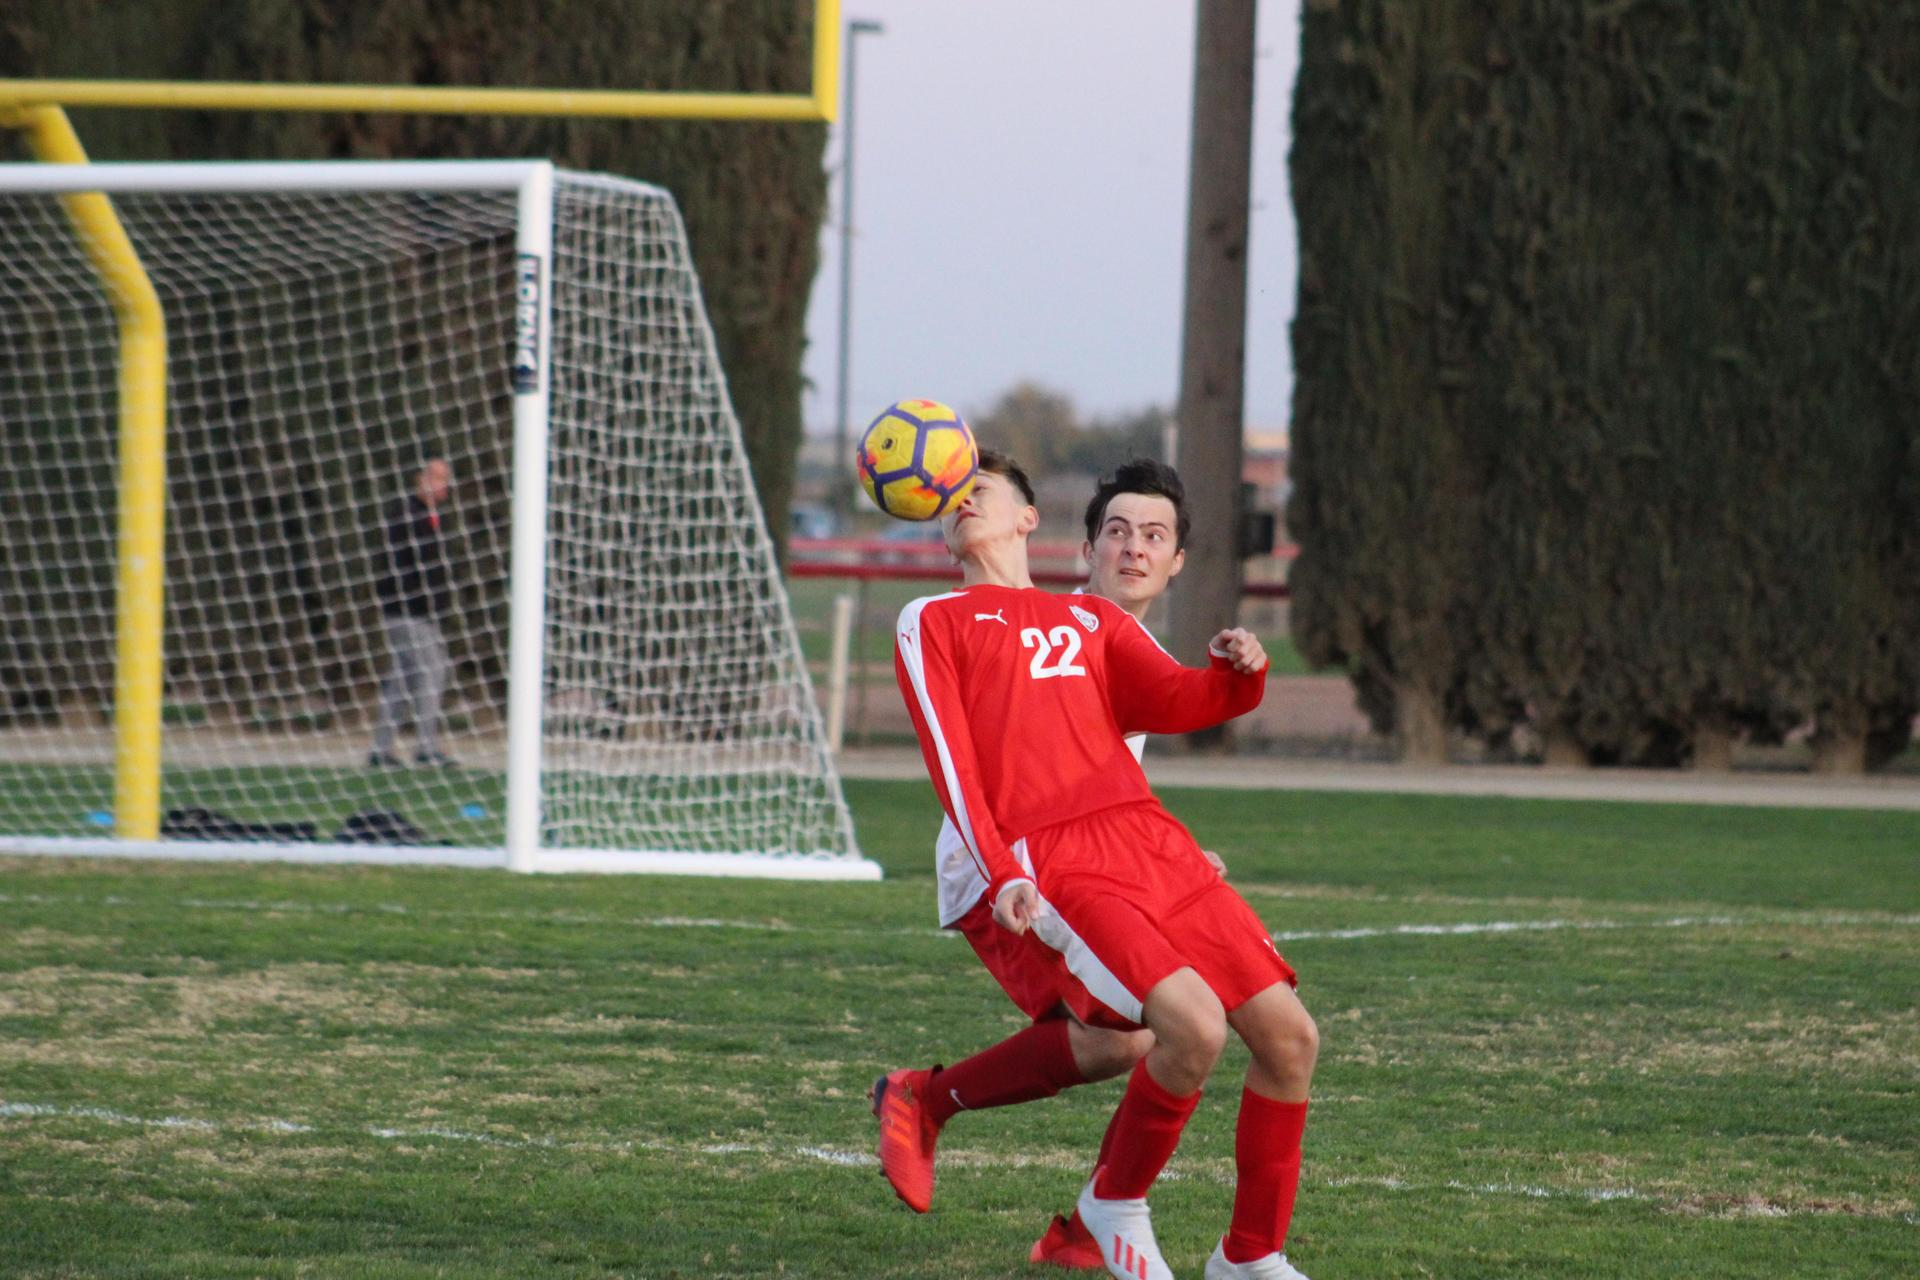 Andrew Garibay heading the ball